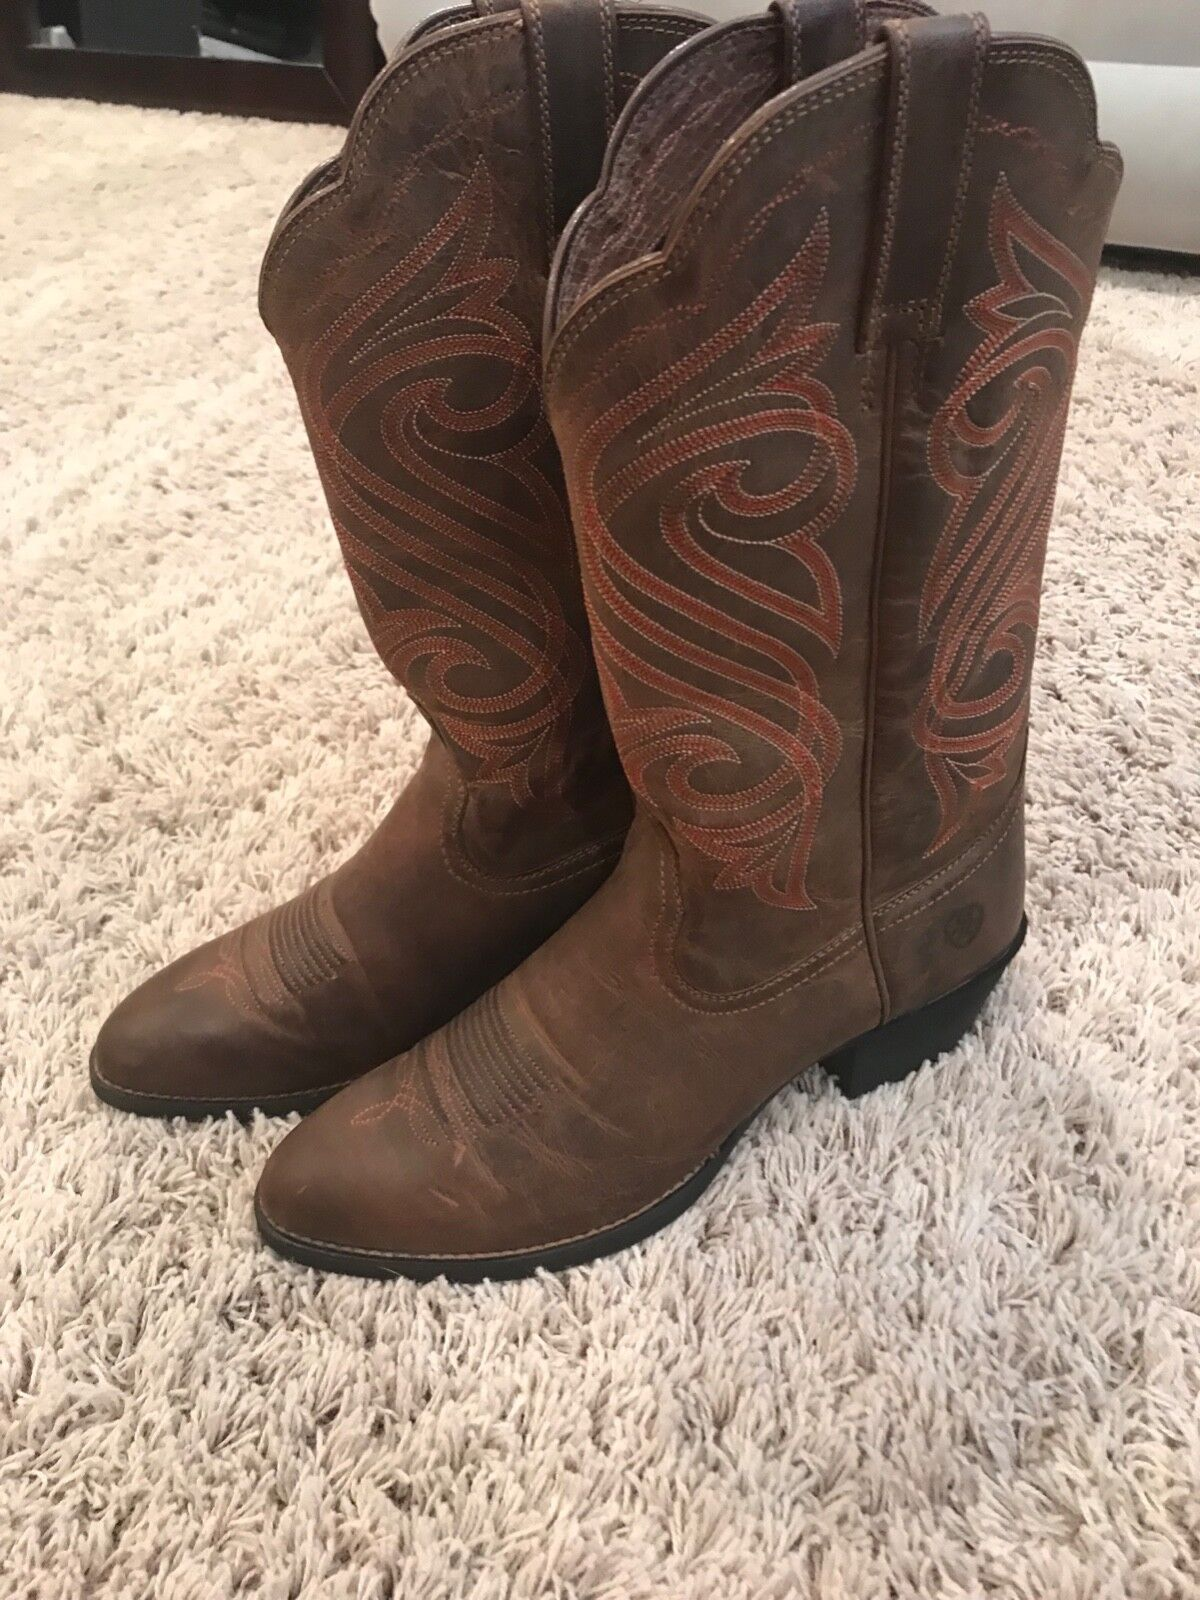 Ariat donna Round Up R Toe-Western dark Toffee Cowboy, stivali Dimensione 11